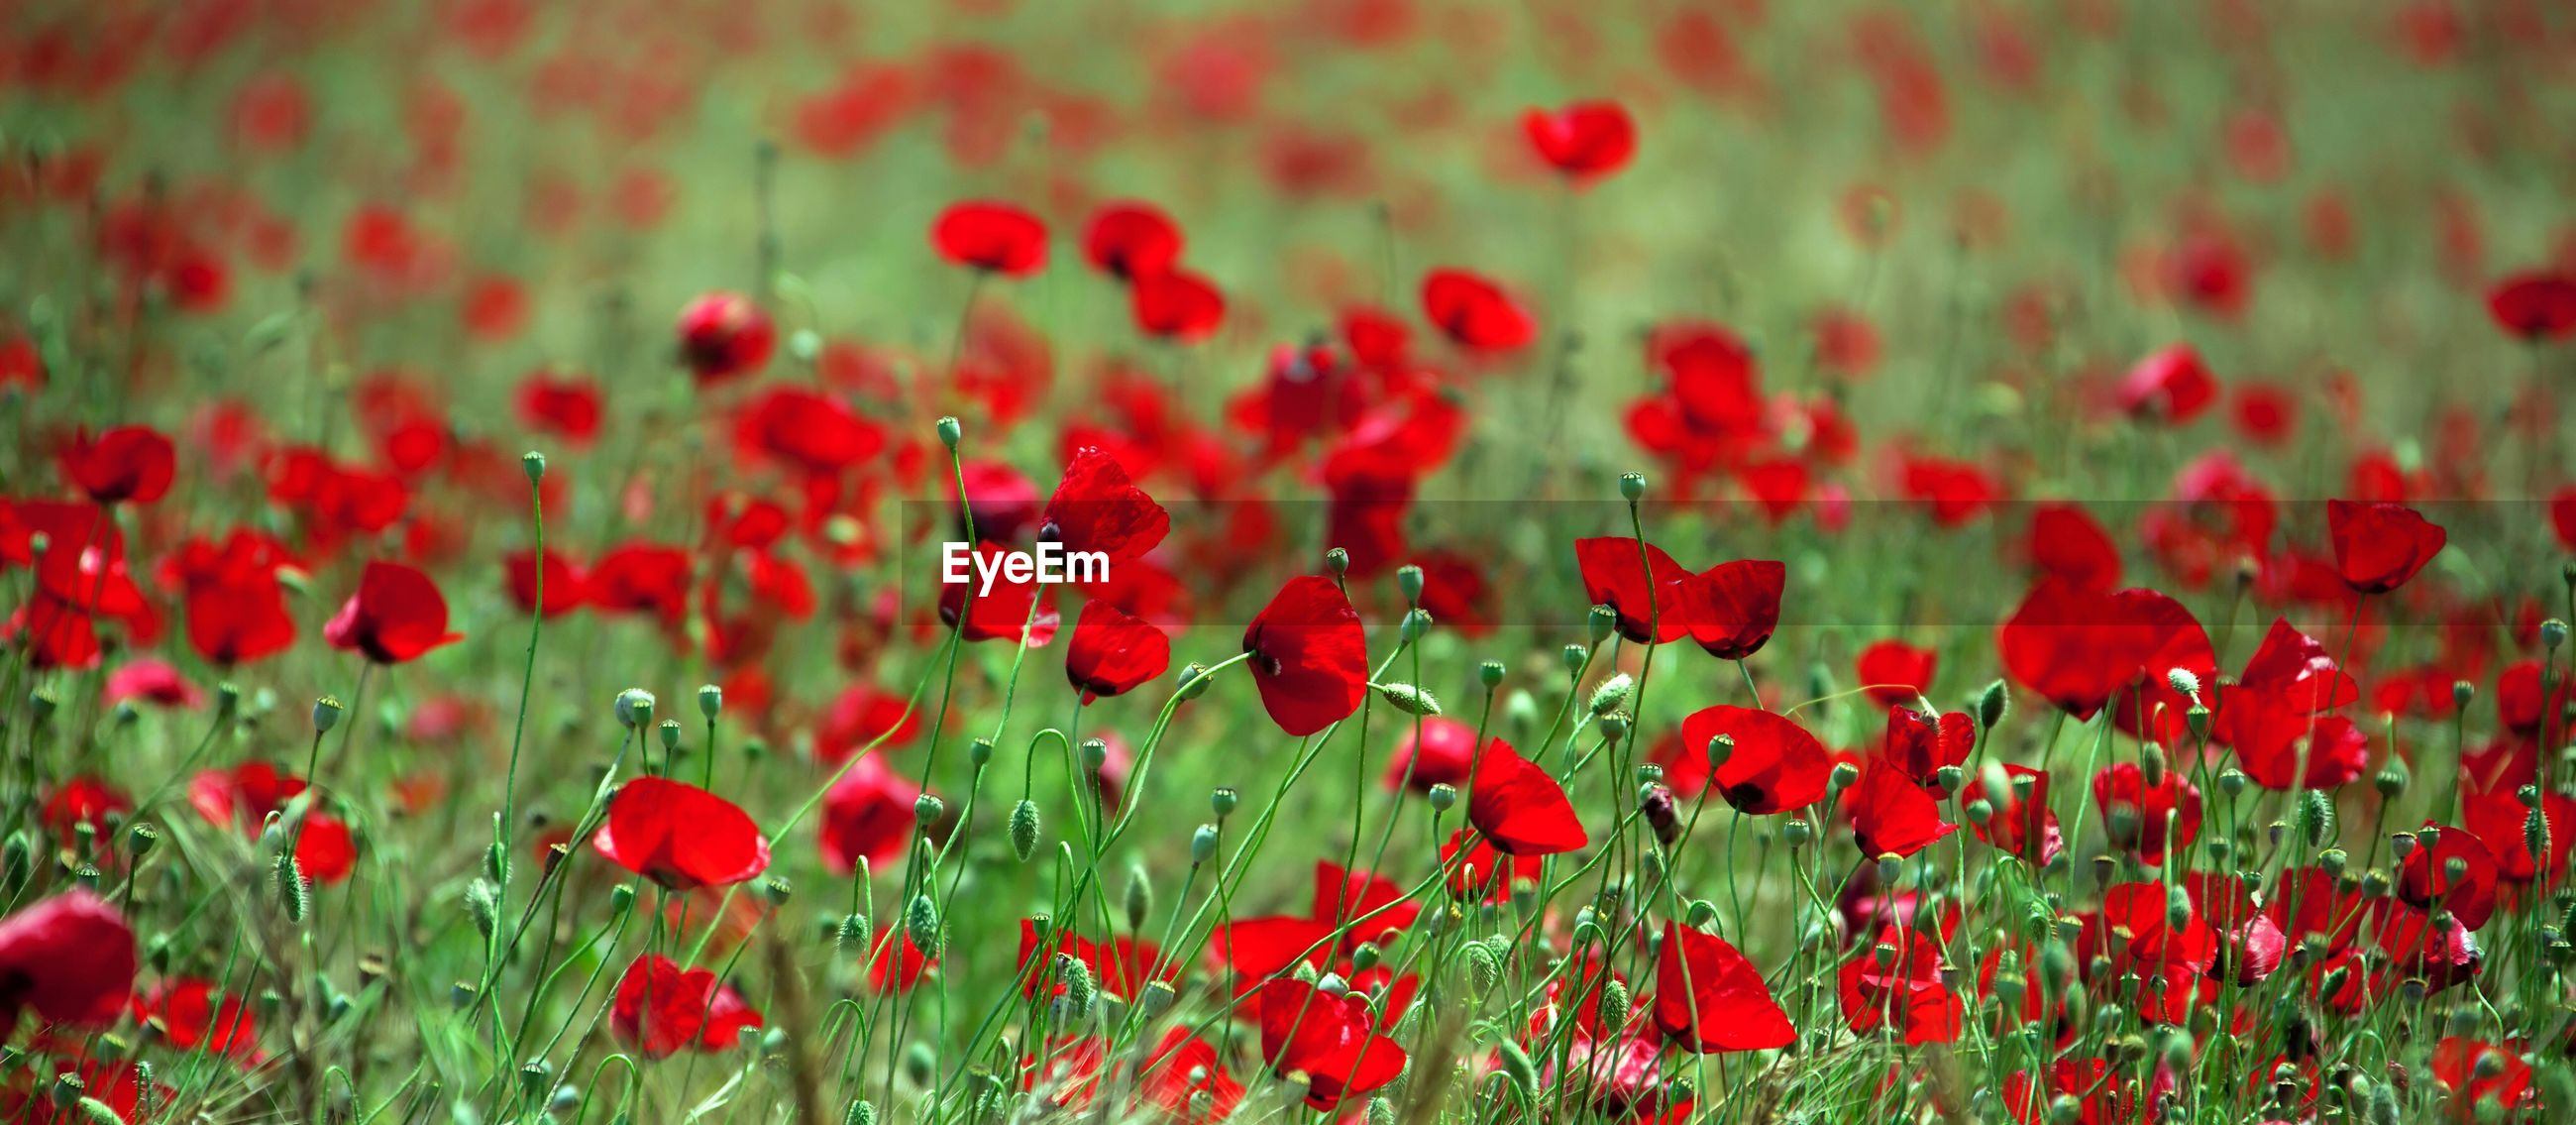 CLOSE-UP OF POPPIES BLOOMING ON FIELD